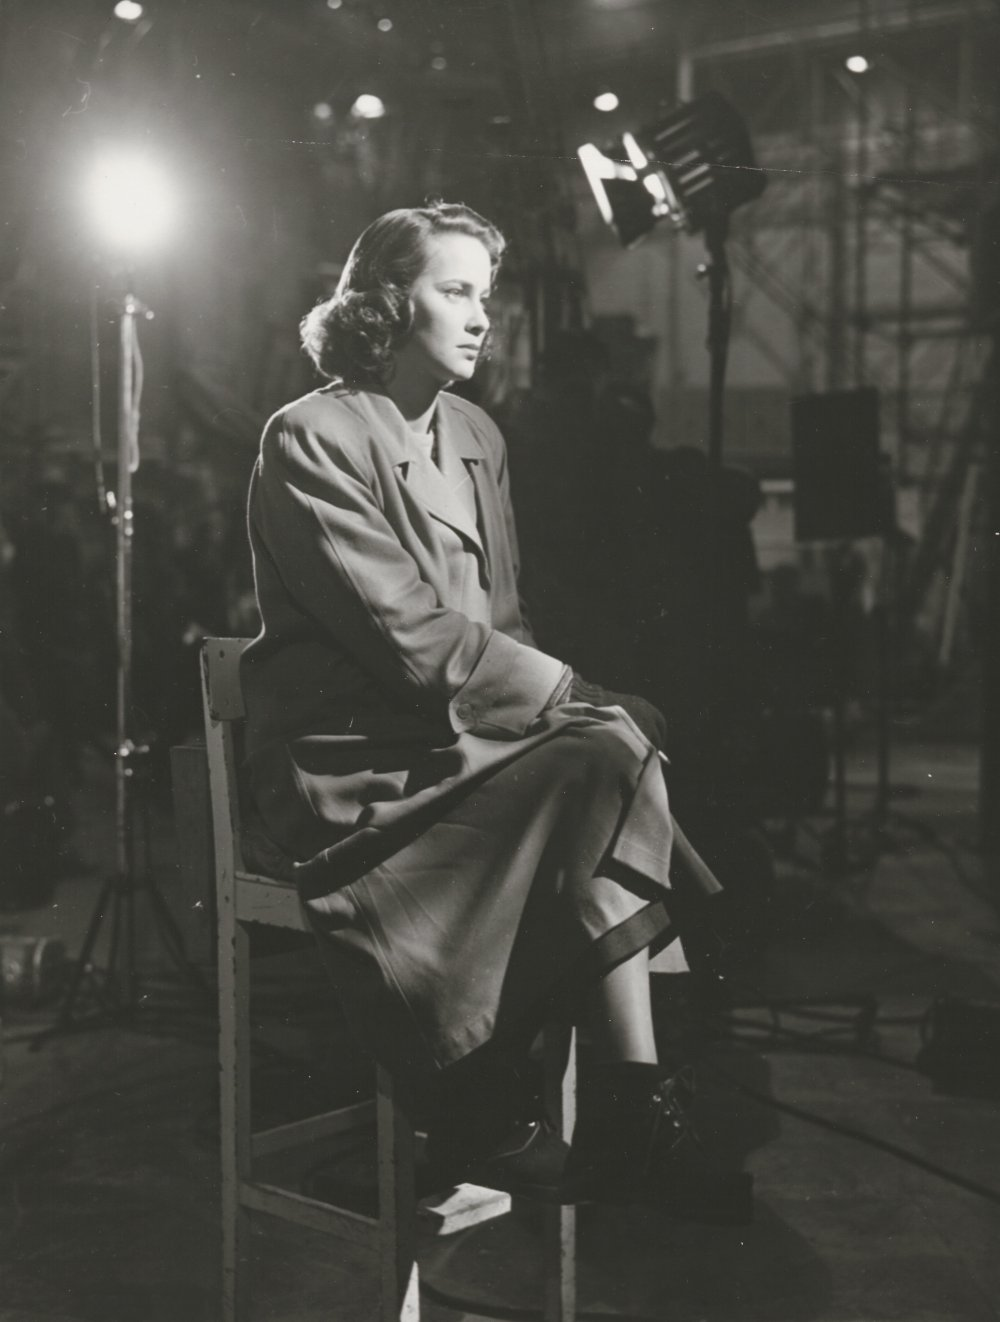 Valli, who later worked with Luchino Visconti and Michelangelo Antonioni, among the studio lights